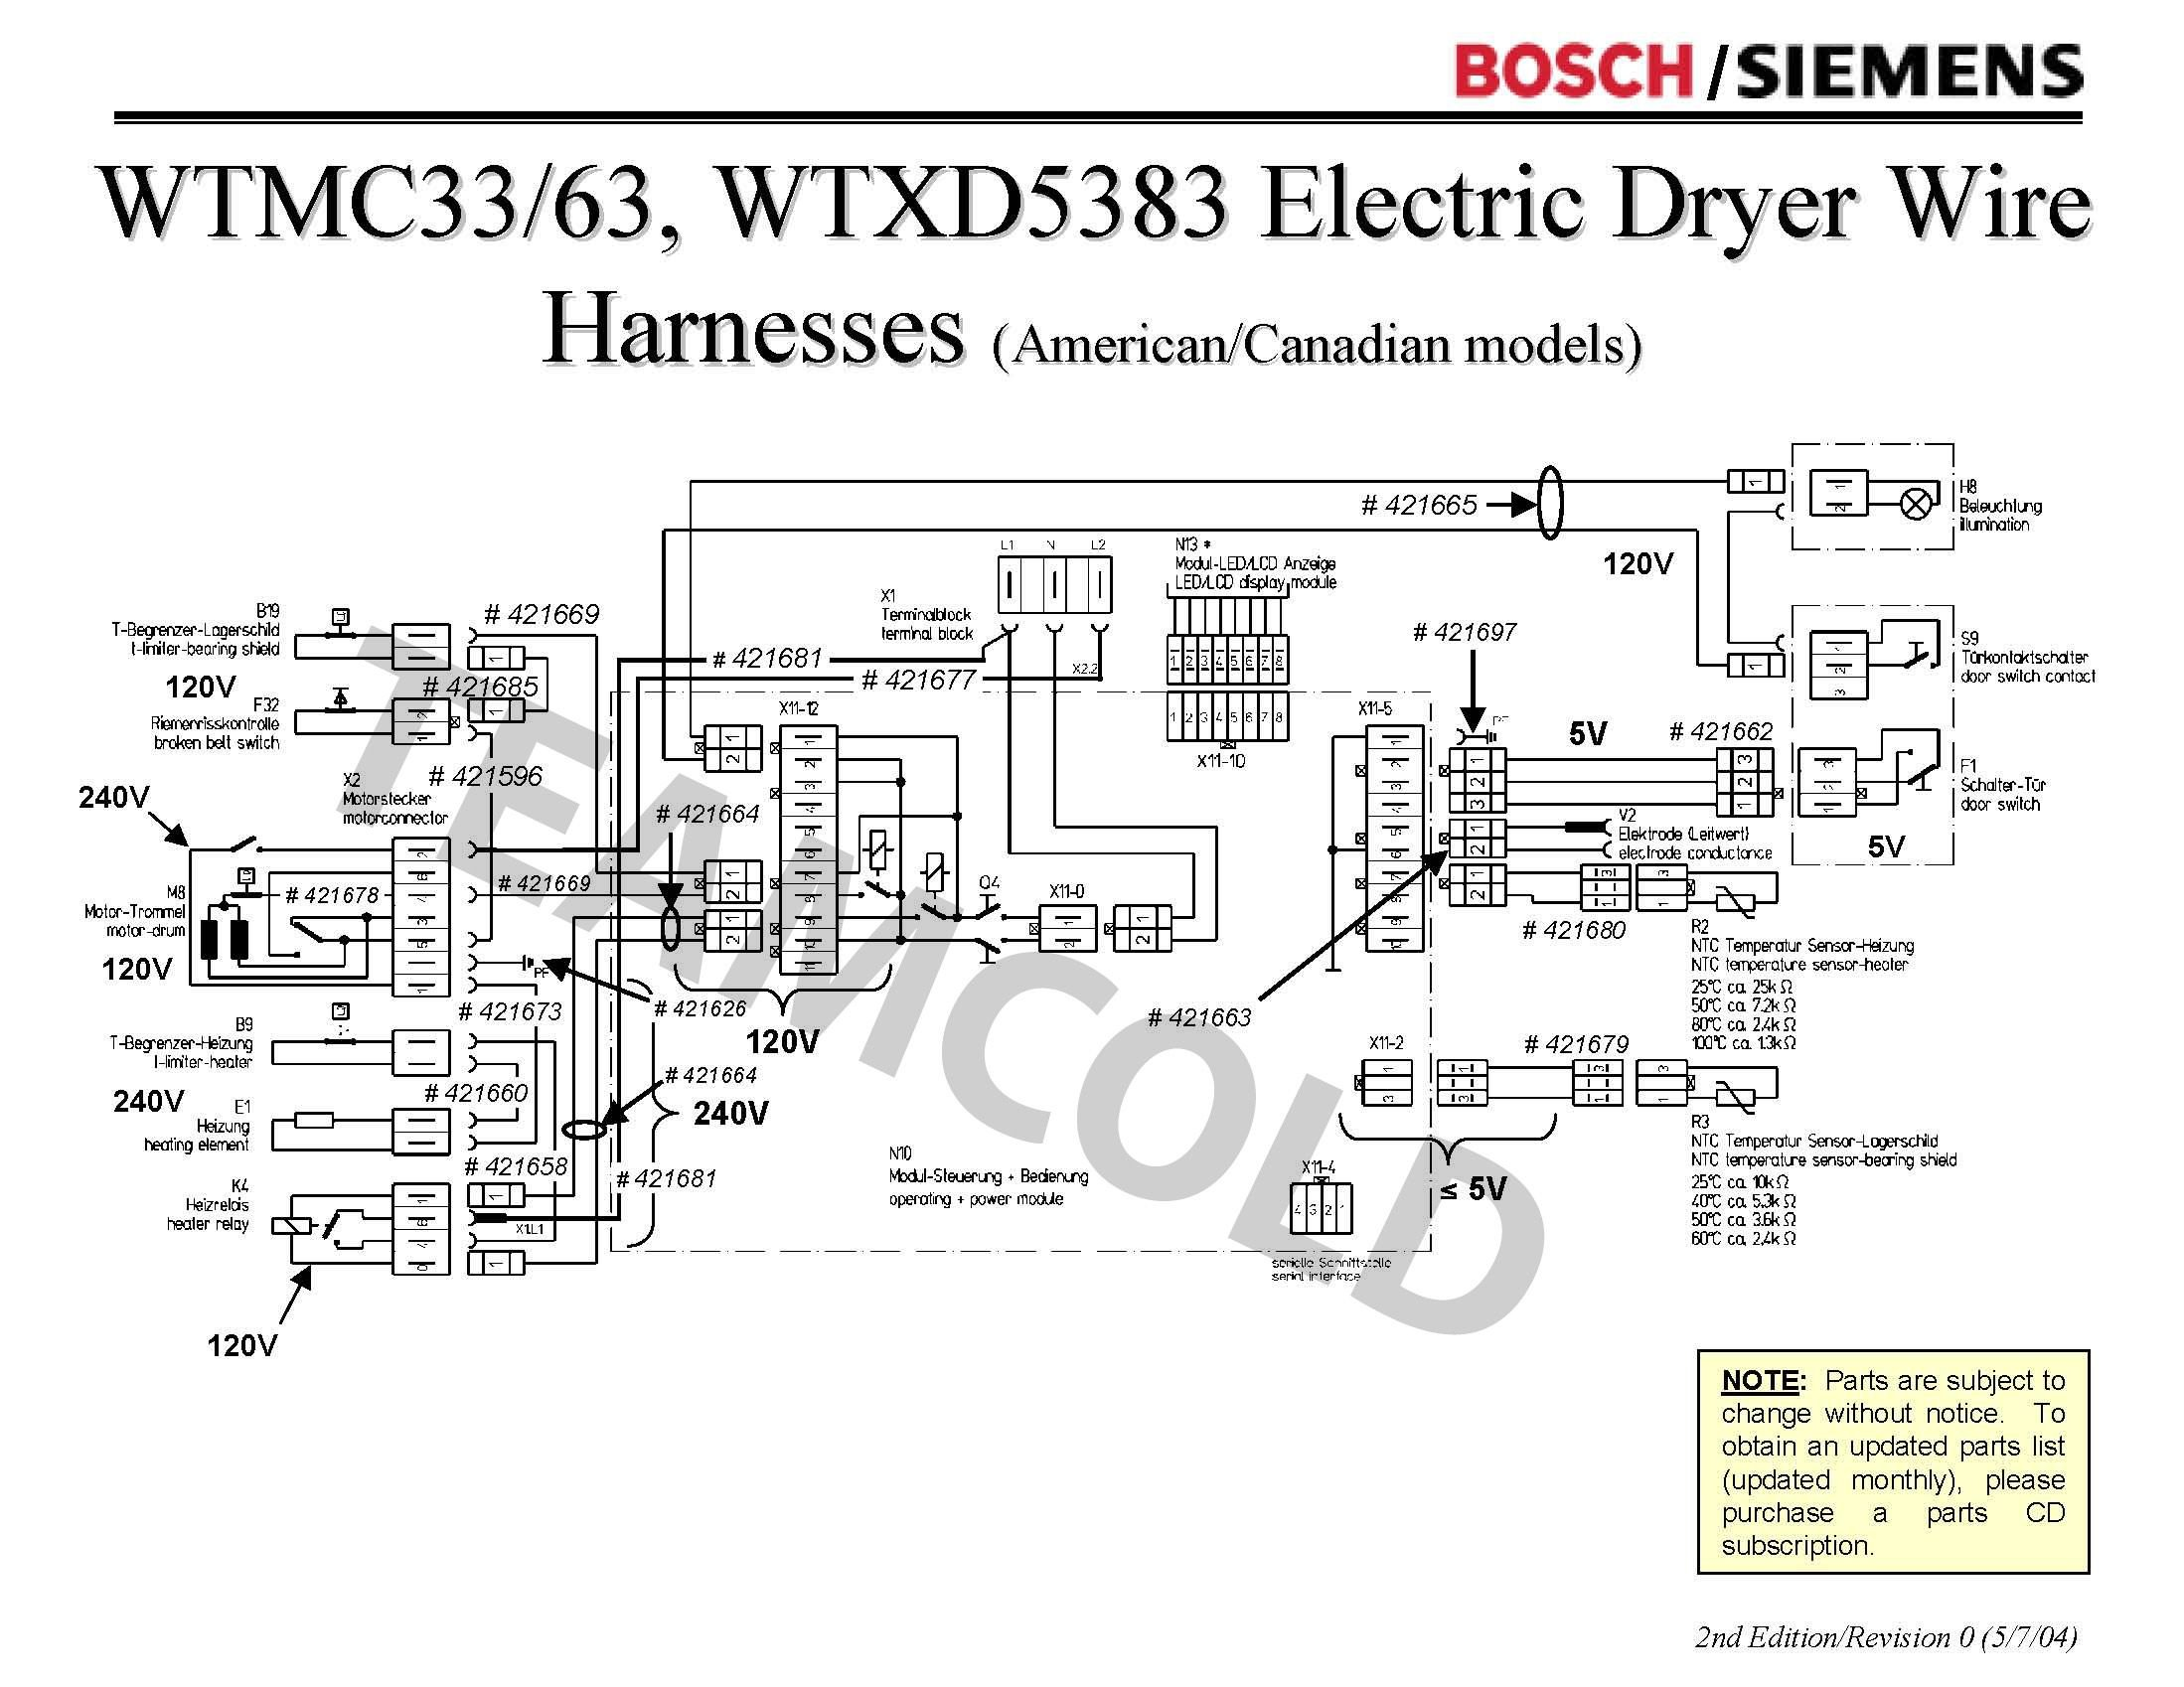 dishwasher wiring diagram problem images can i get a wiring diagram for bosch wtmc3300us01 or a repair